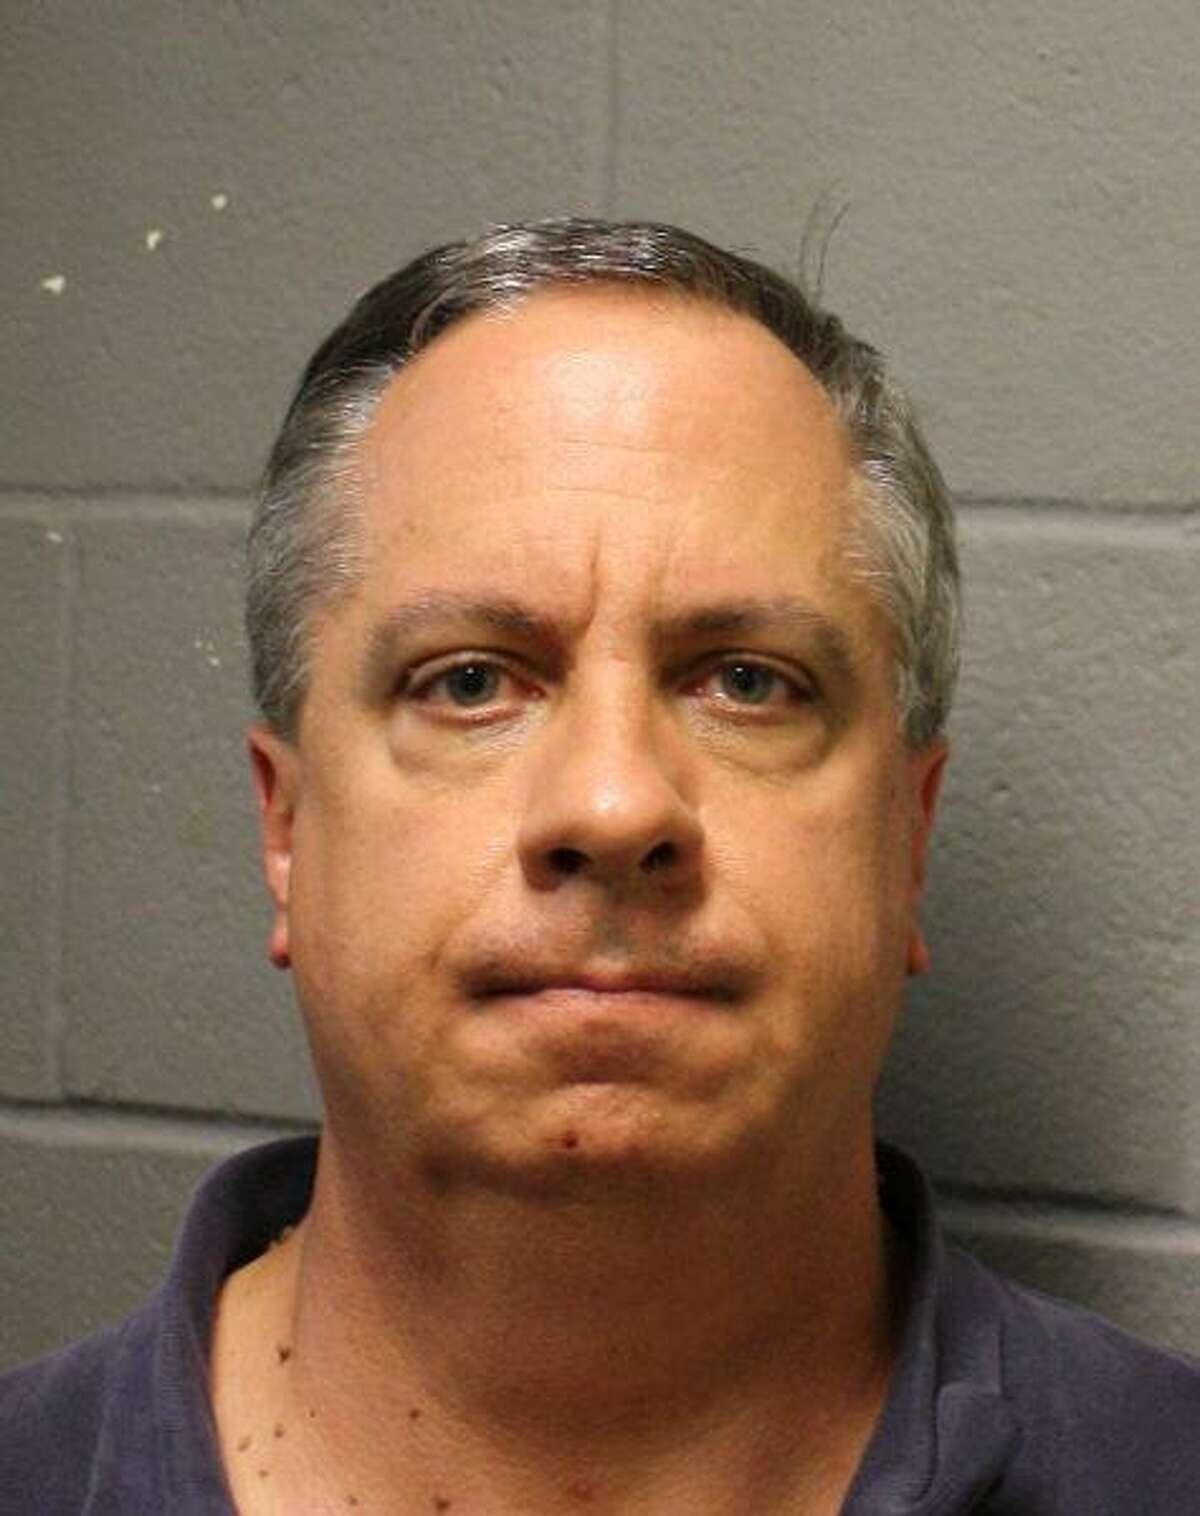 Gregory Wayne Lueb, 56, who was fired this week from the county office after he was charged with felony theft for stealing tens of thousands of dollars from the county credit union as part of a scheme he claimed involved a financial dominatrix, prosecutors announced Friday. >> See other Texas public officials who have been in trouble with the law...